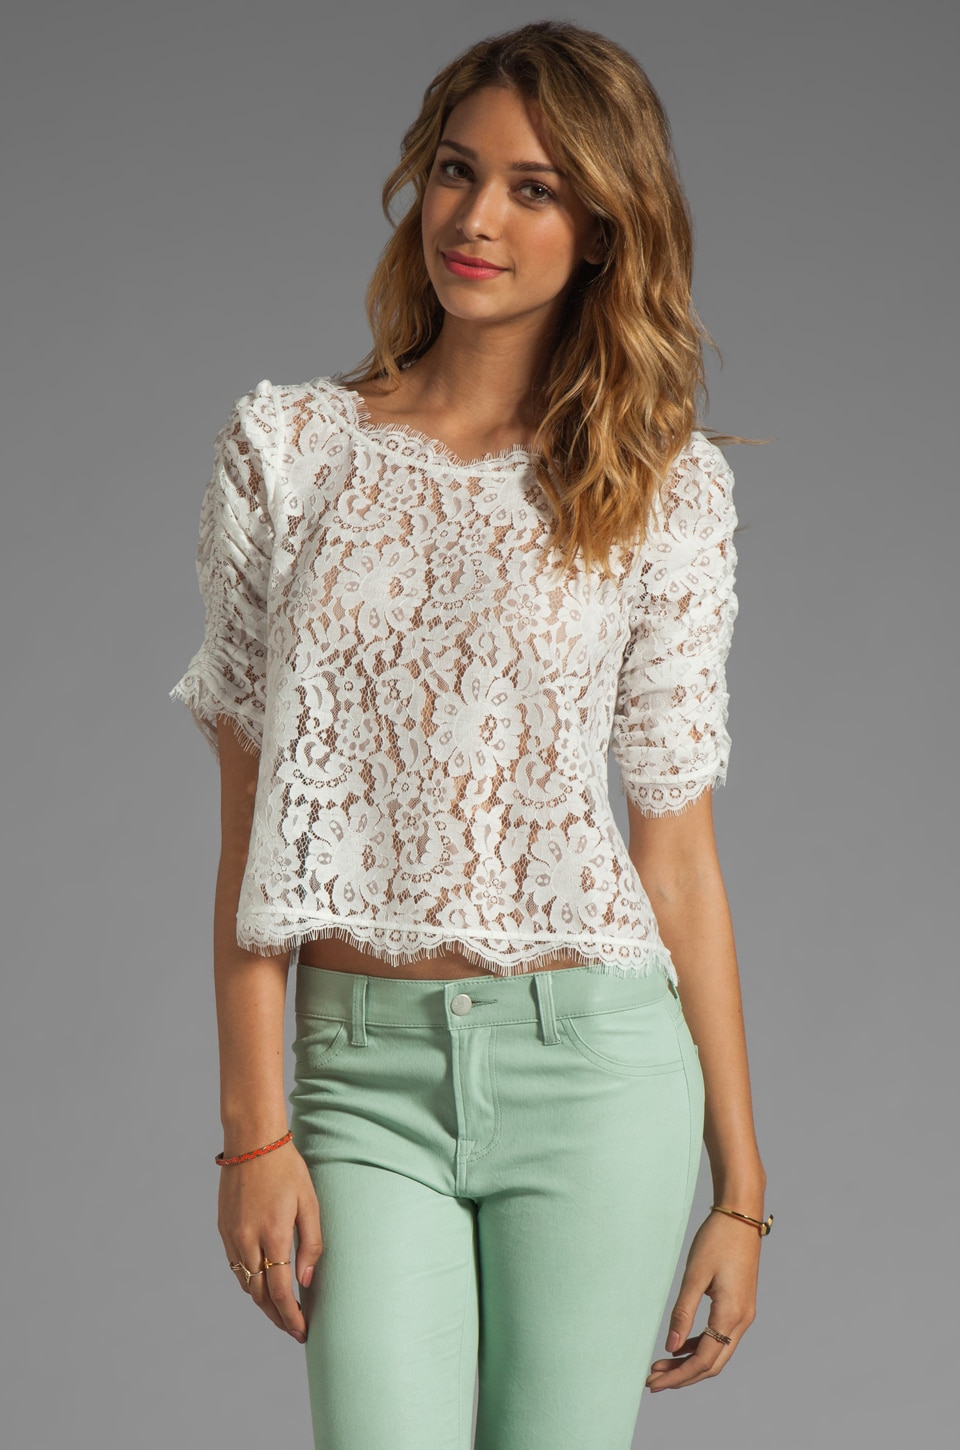 Joie Fanny Lace Top in Porcelain